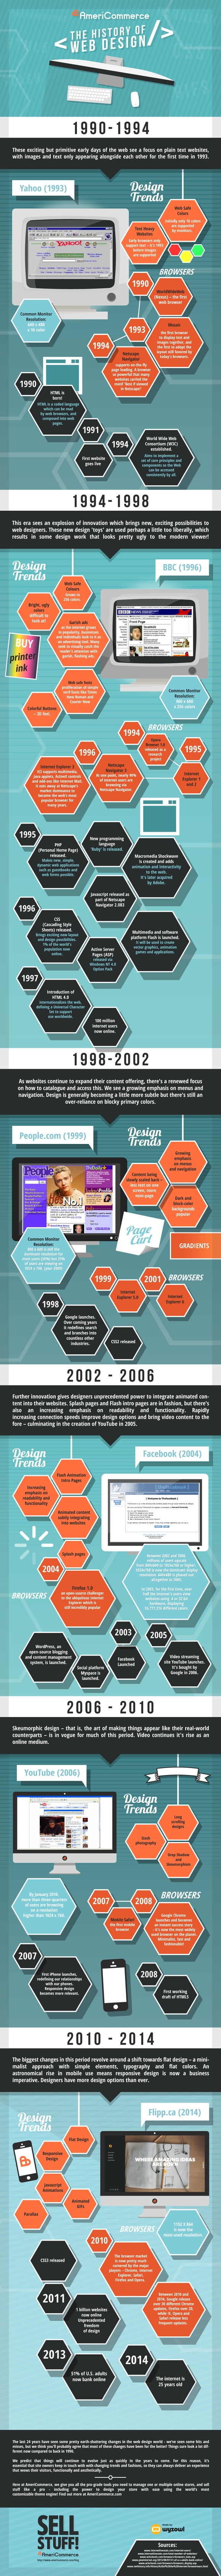 The History of Web Design - Fresh & Creative Web Infographics 2016